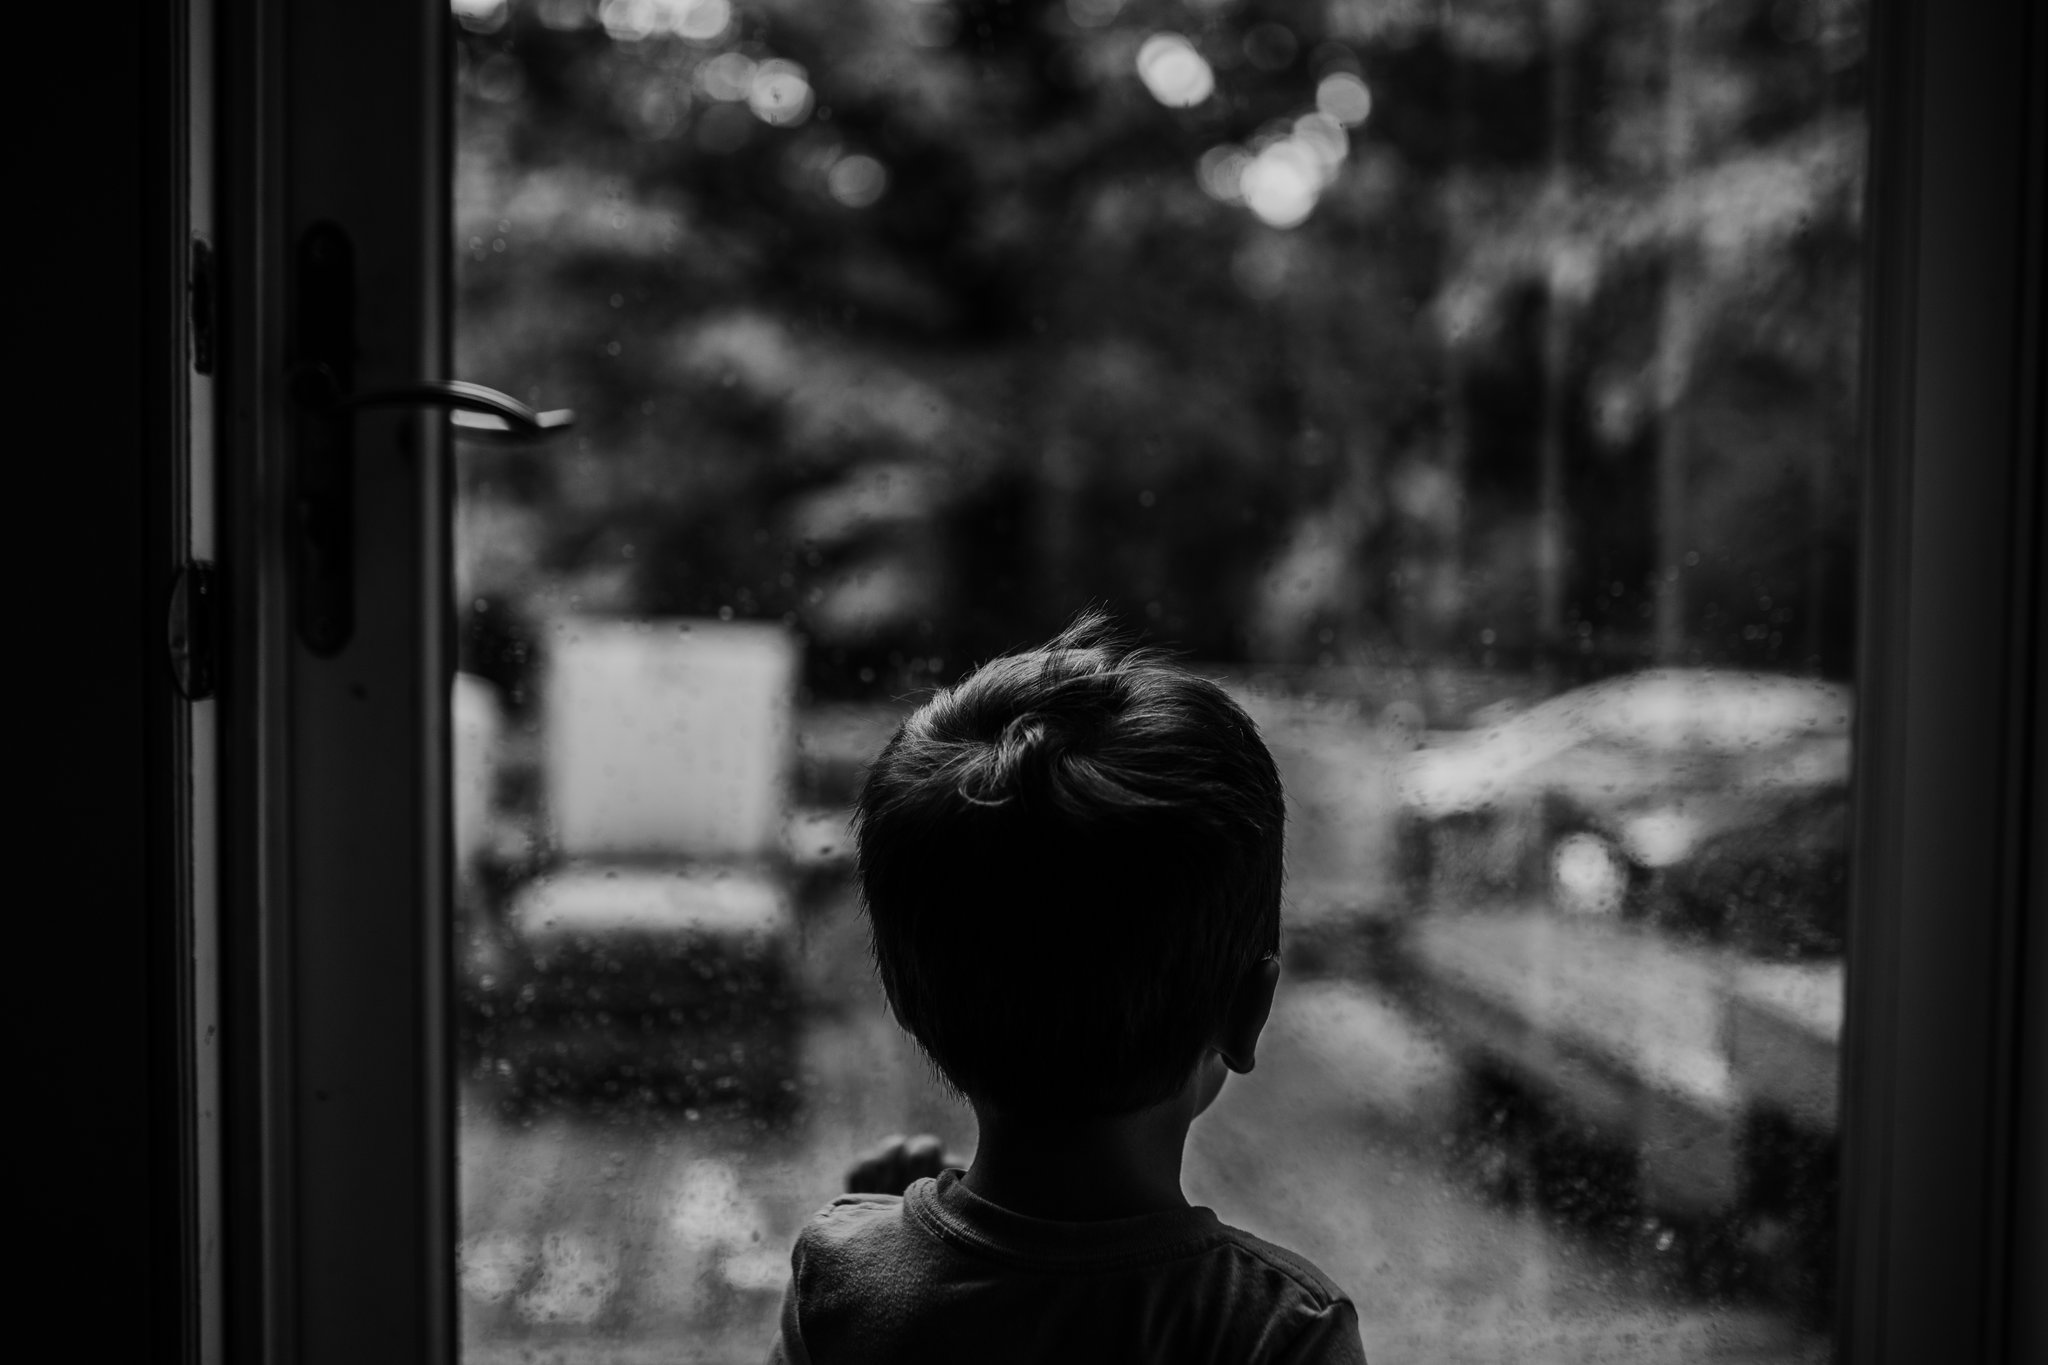 Little boy looks out front door at the rain